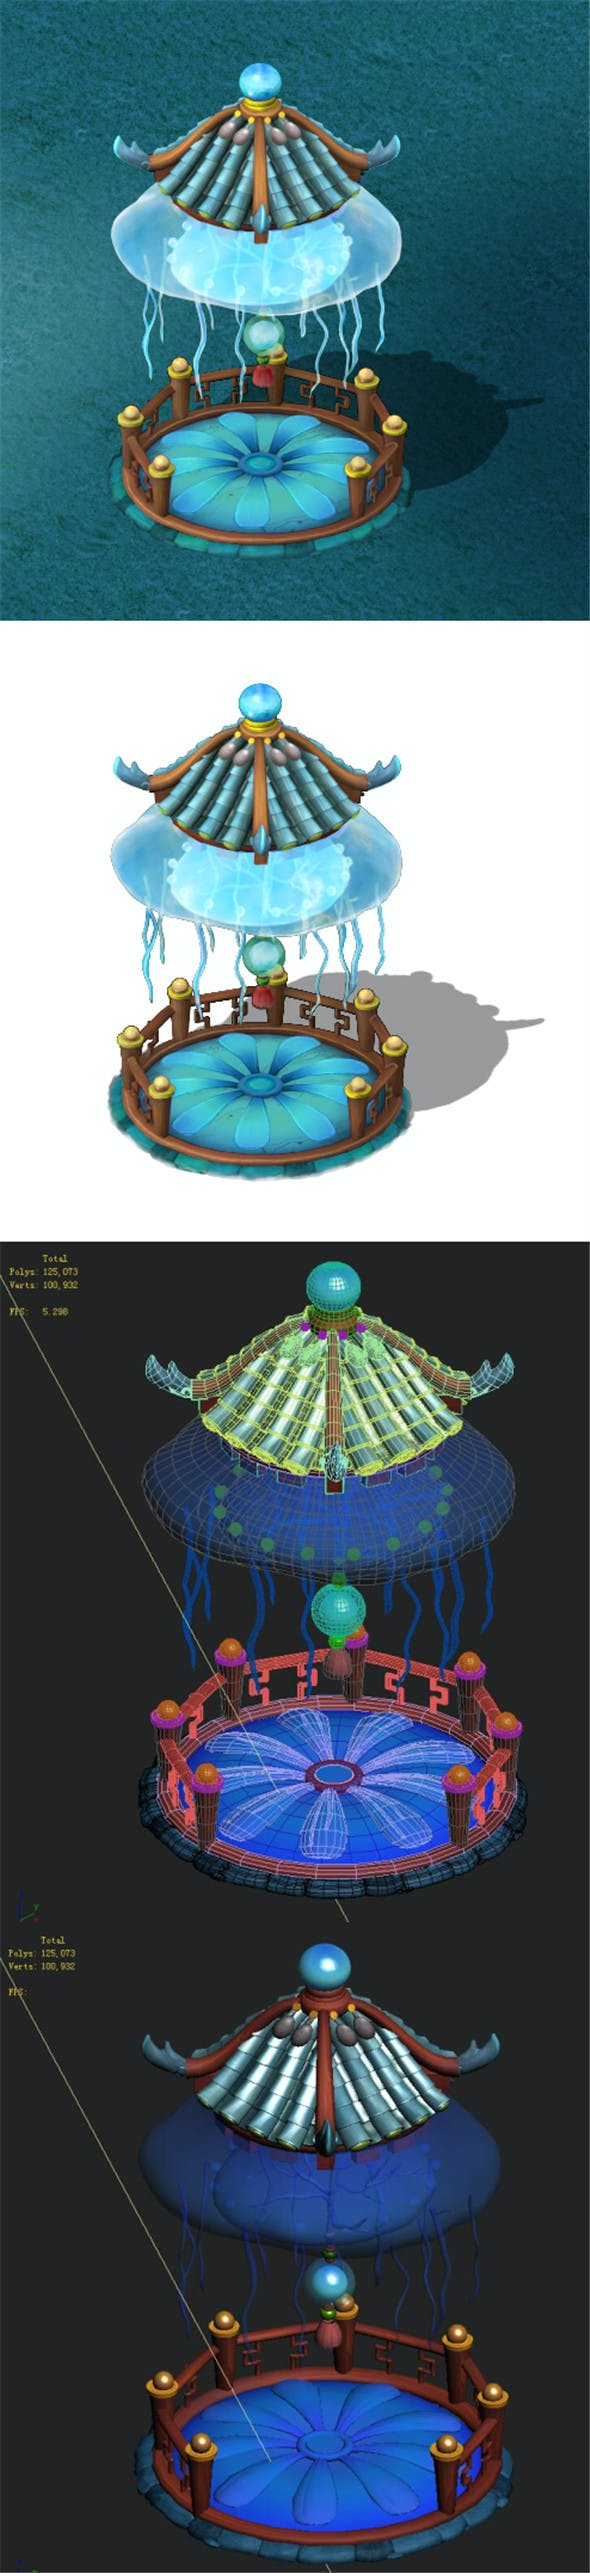 Submarine cartoon world - jellyfish pavilion - 3DOcean Item for Sale